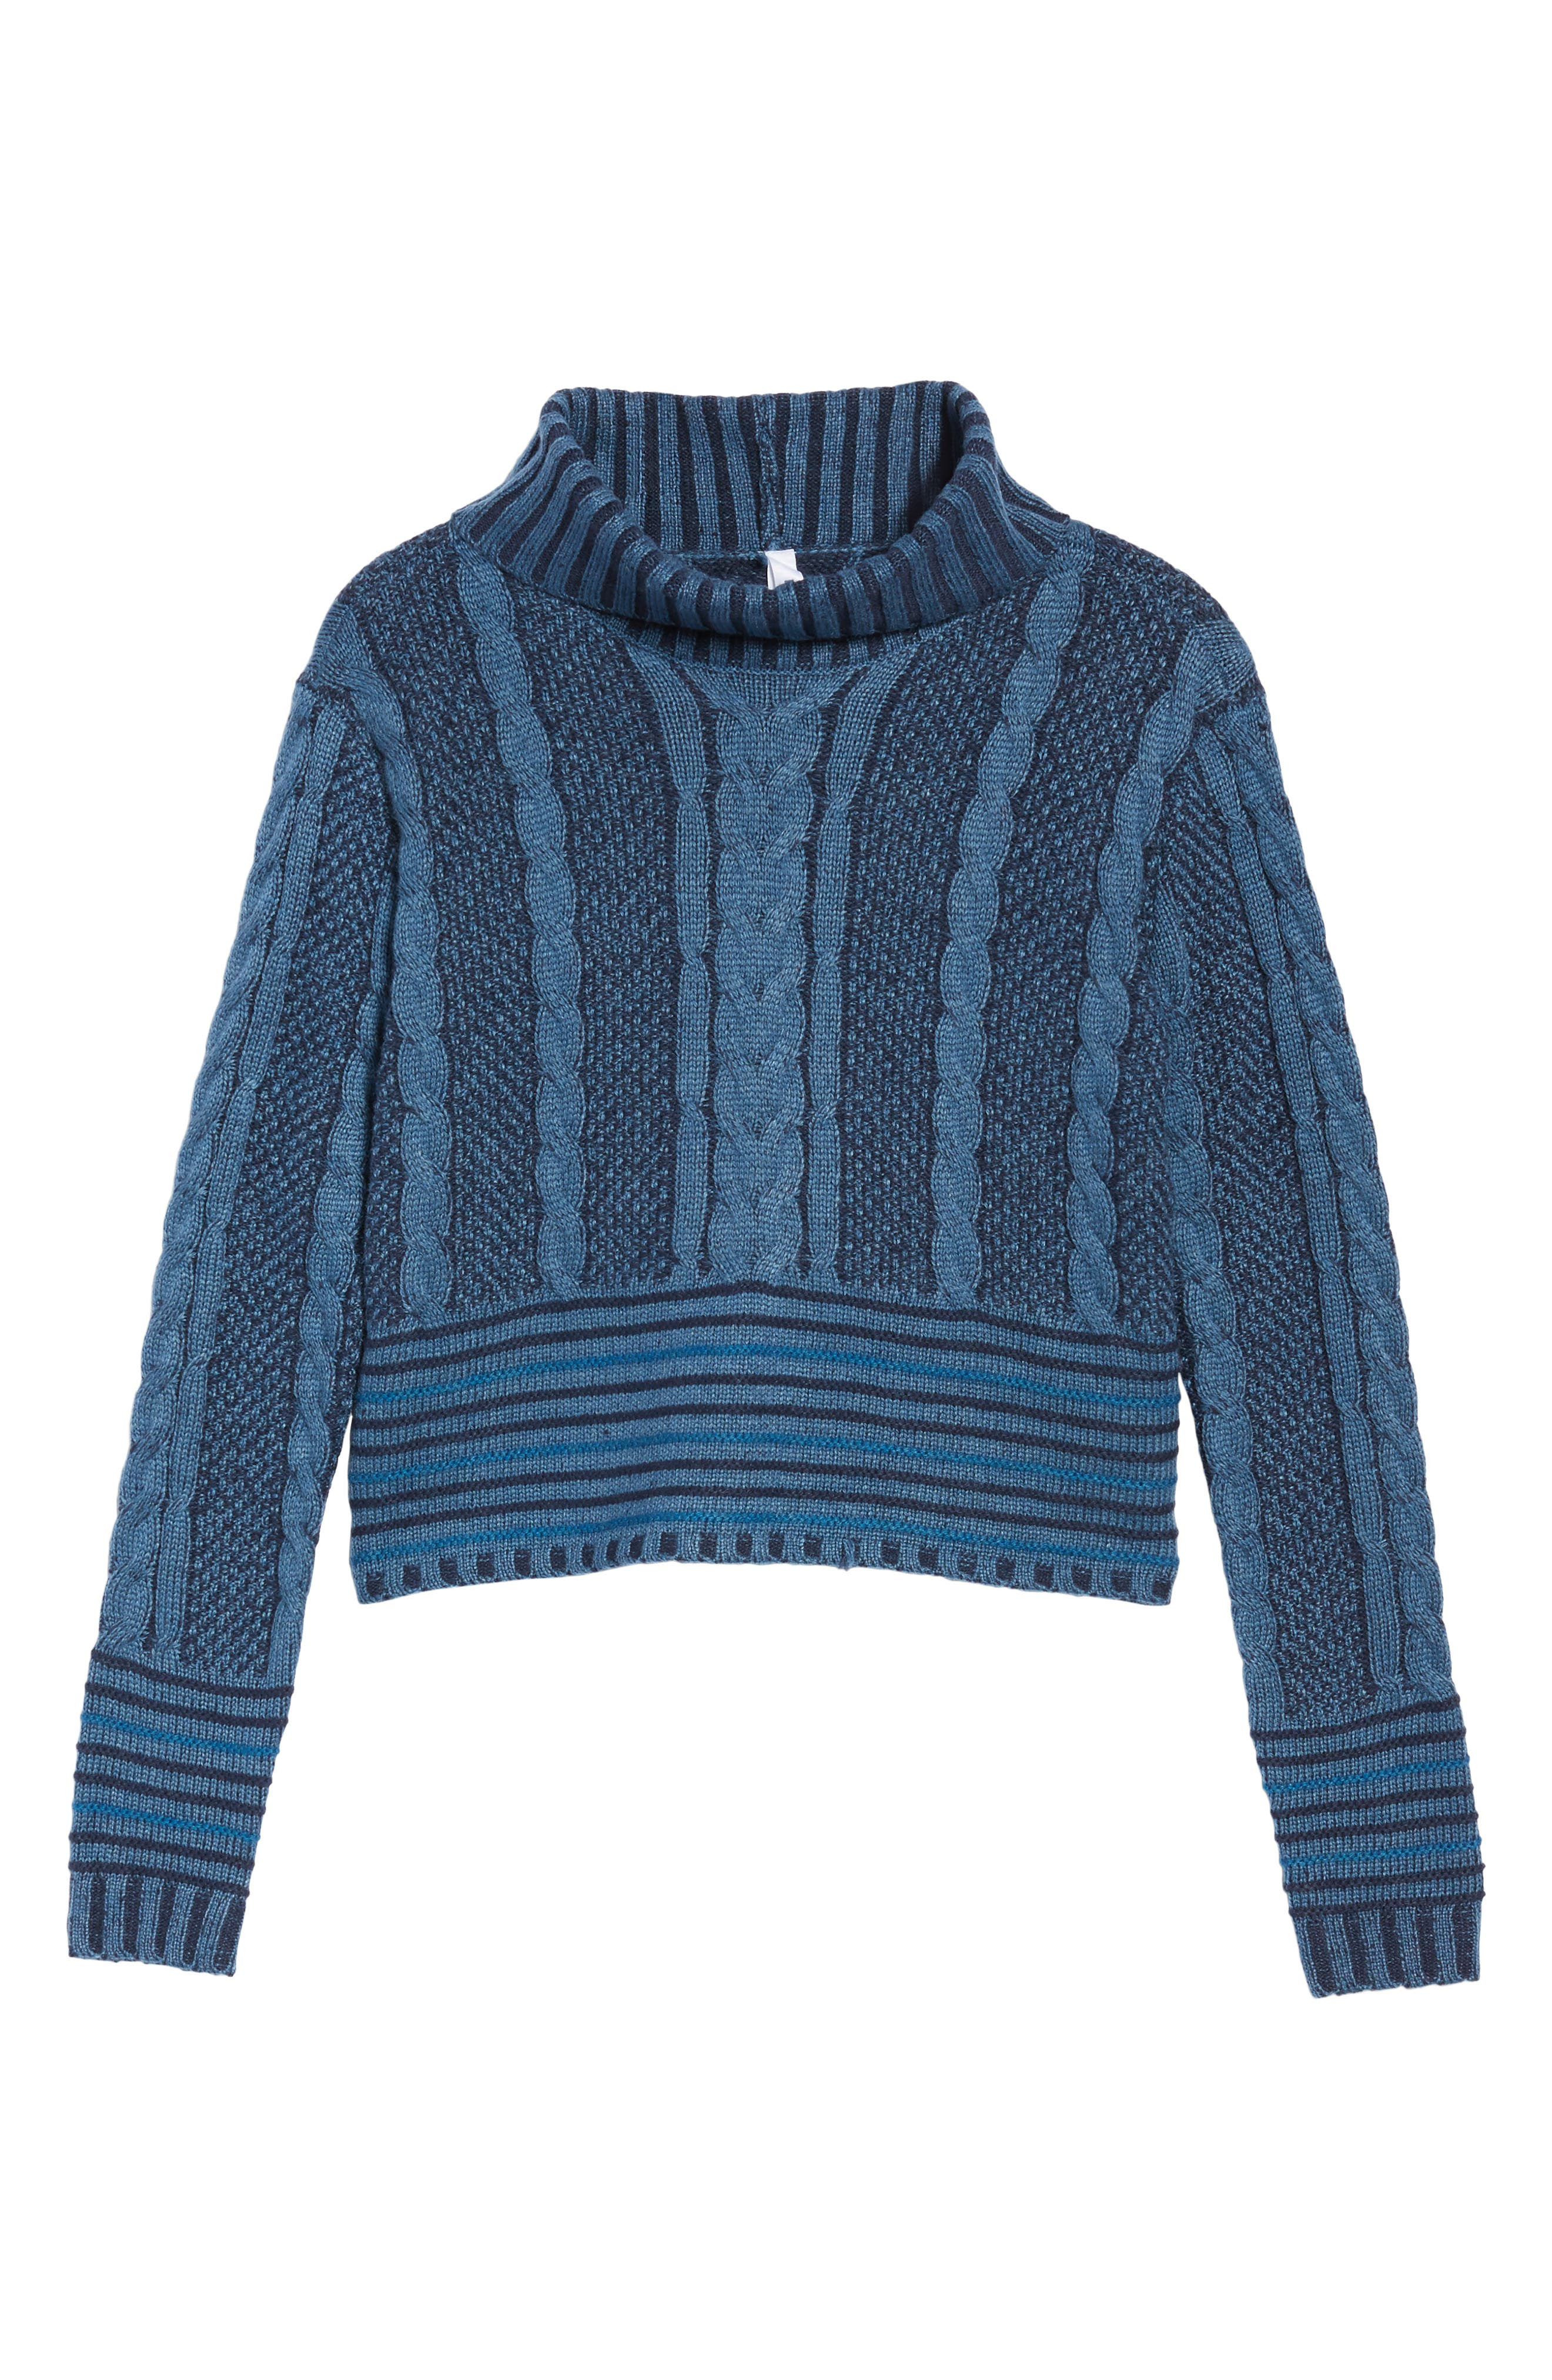 Mix Up Knit Sweater,                             Alternate thumbnail 6, color,                             Blue Heather